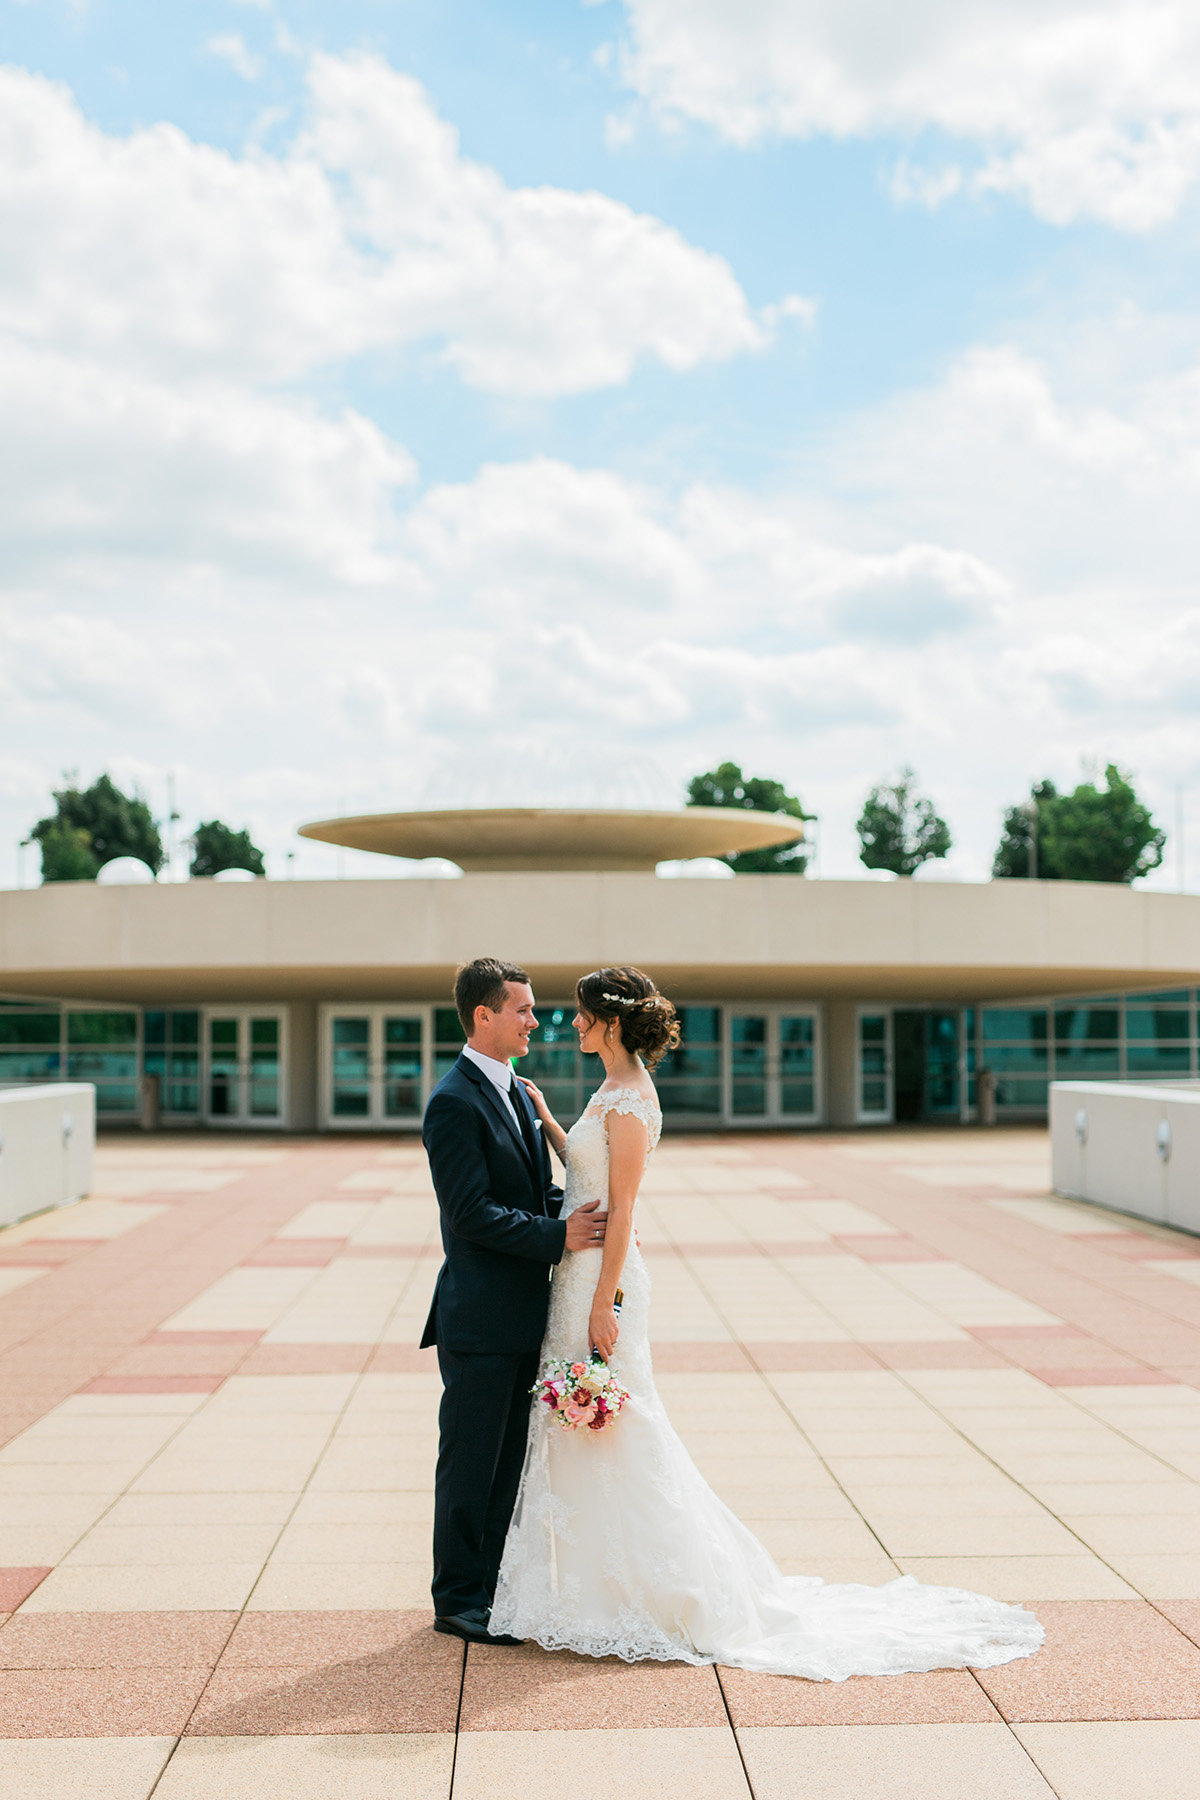 monona-terrace-bride-groom